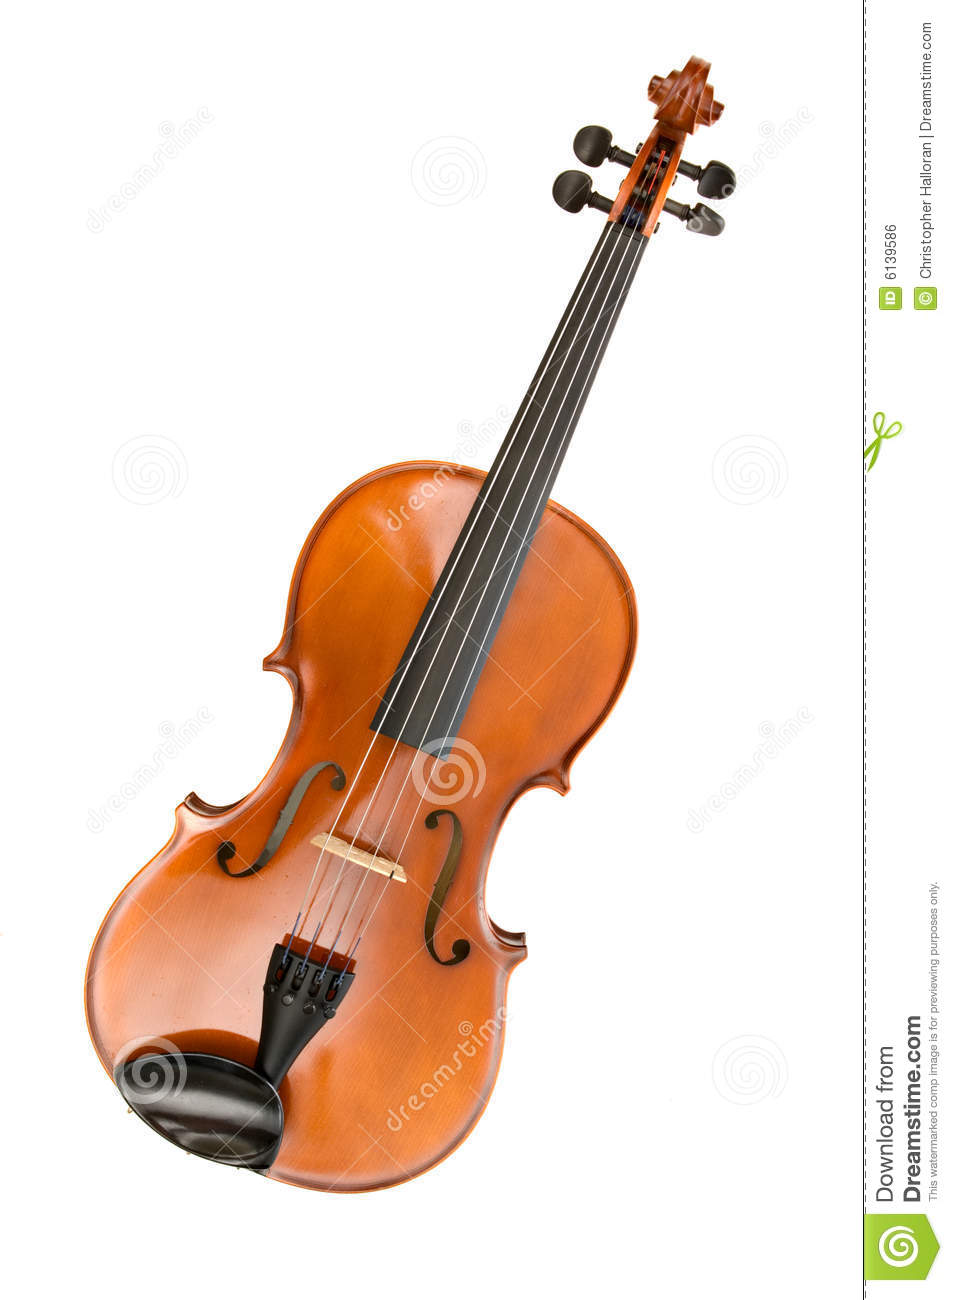 Viola Or Violin Royalty Free Stock Image - Image: 6139586